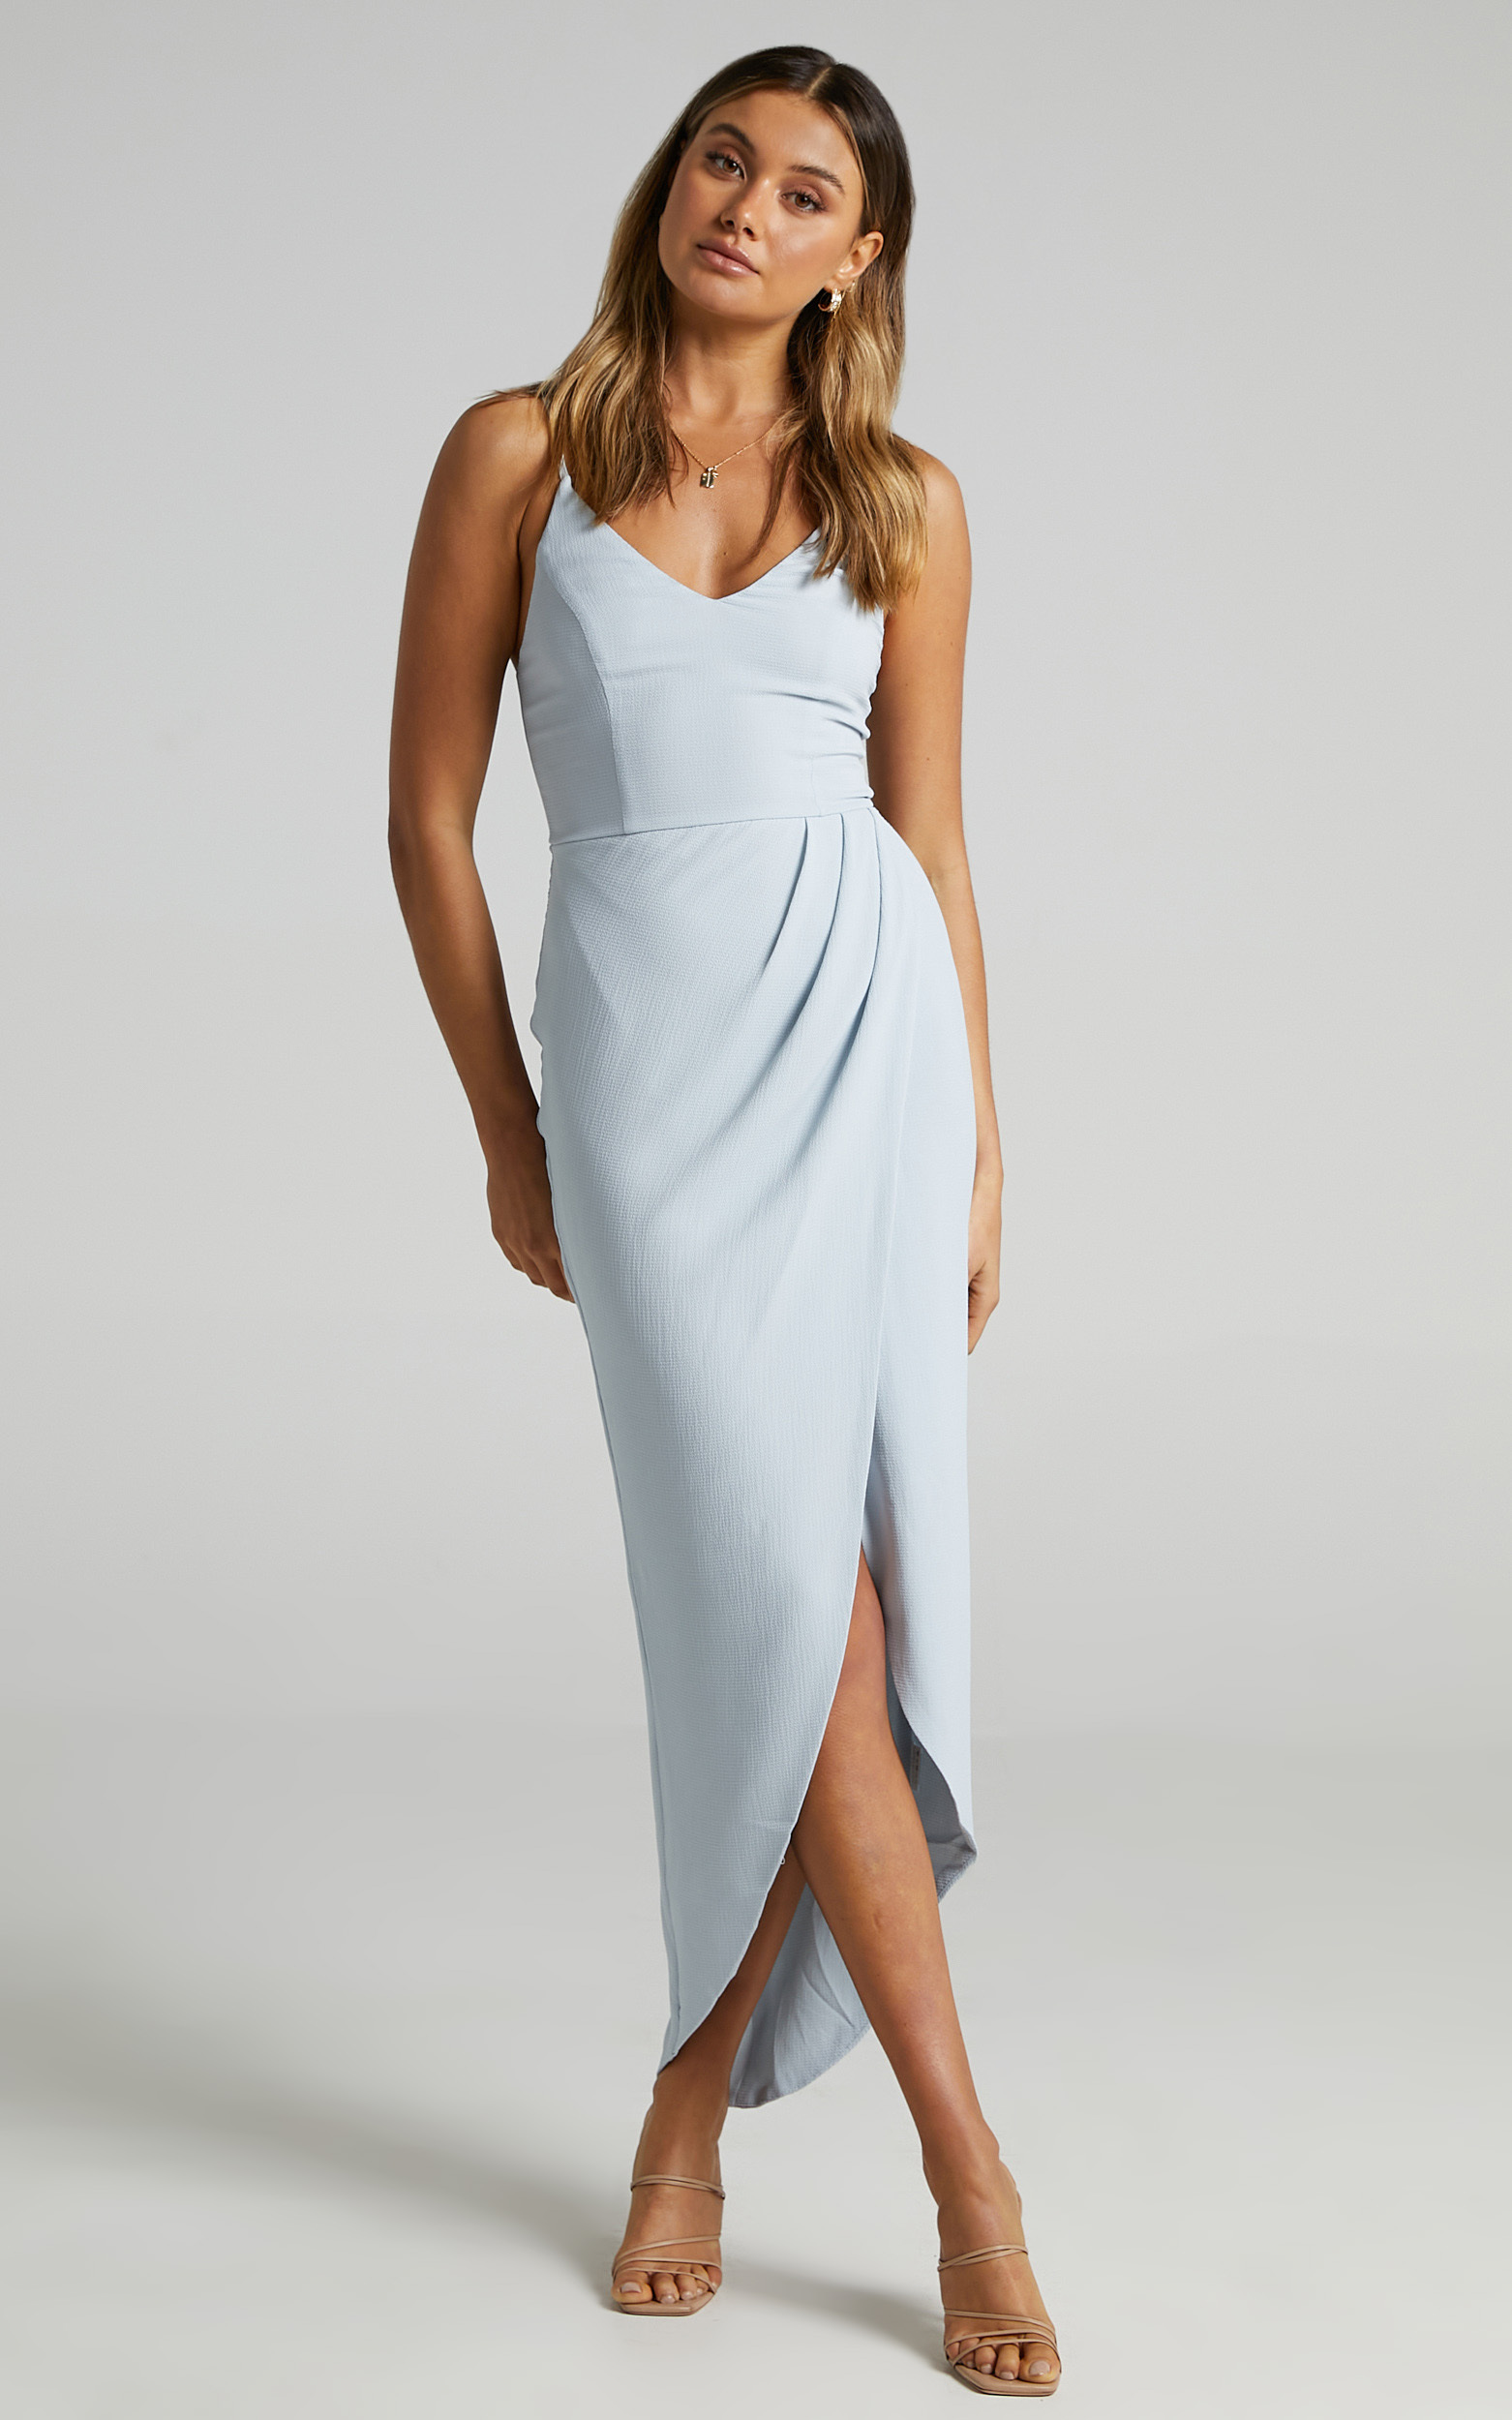 Lucky Day Maxi Dress in Blue - 04, BLU3, hi-res image number null